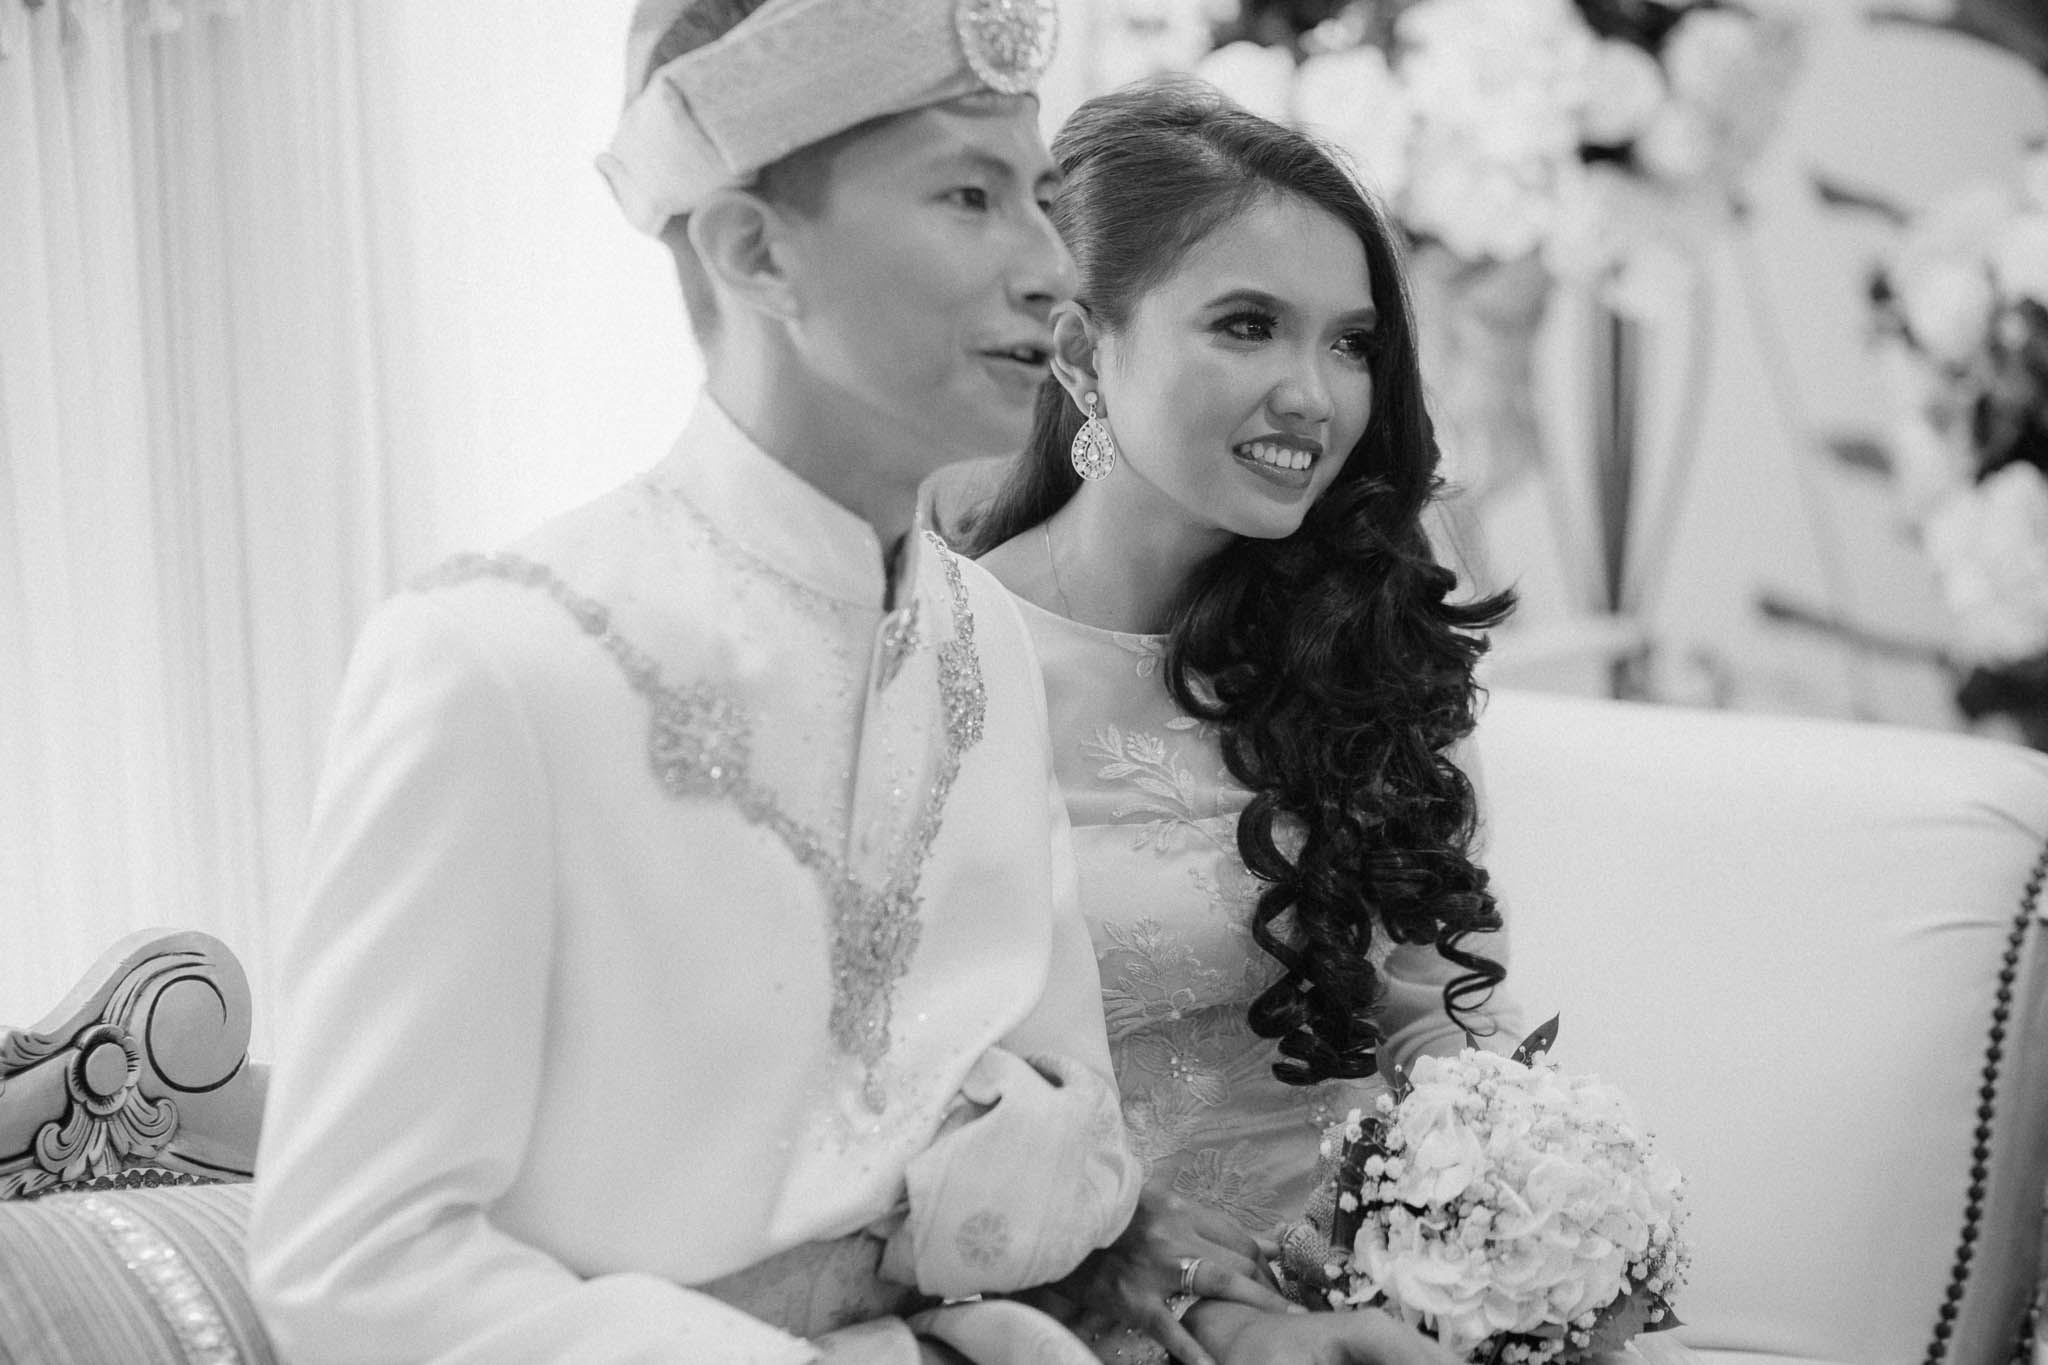 singapore-wedding-photographer-wedding-halimah-muhsin-041.jpg